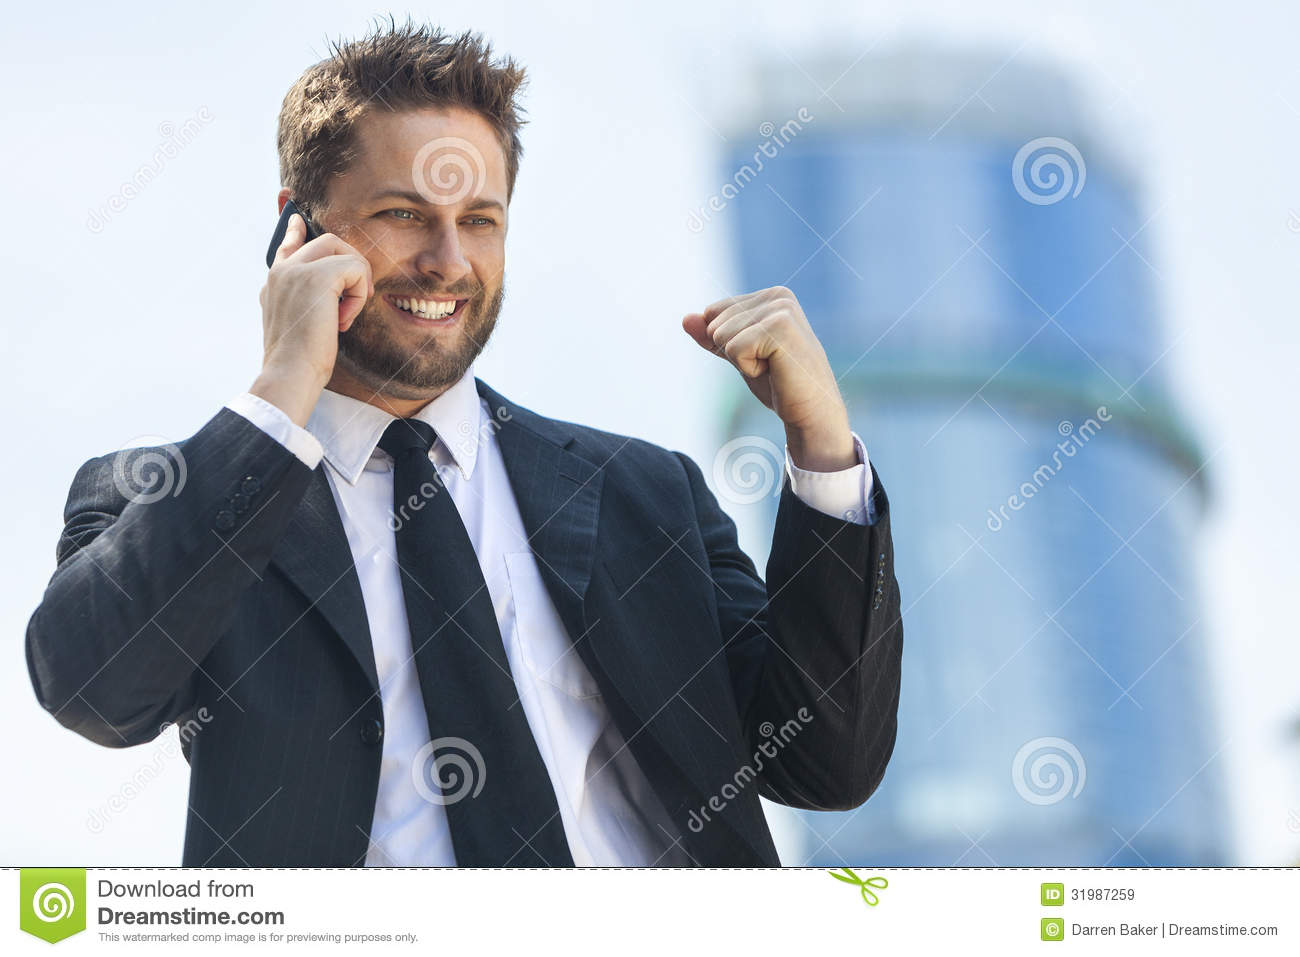 young-successful-business-man-talking-cell-phone-male-executive-businessman-his-mobile-celebrating-front-high-rise-31987259.jpg